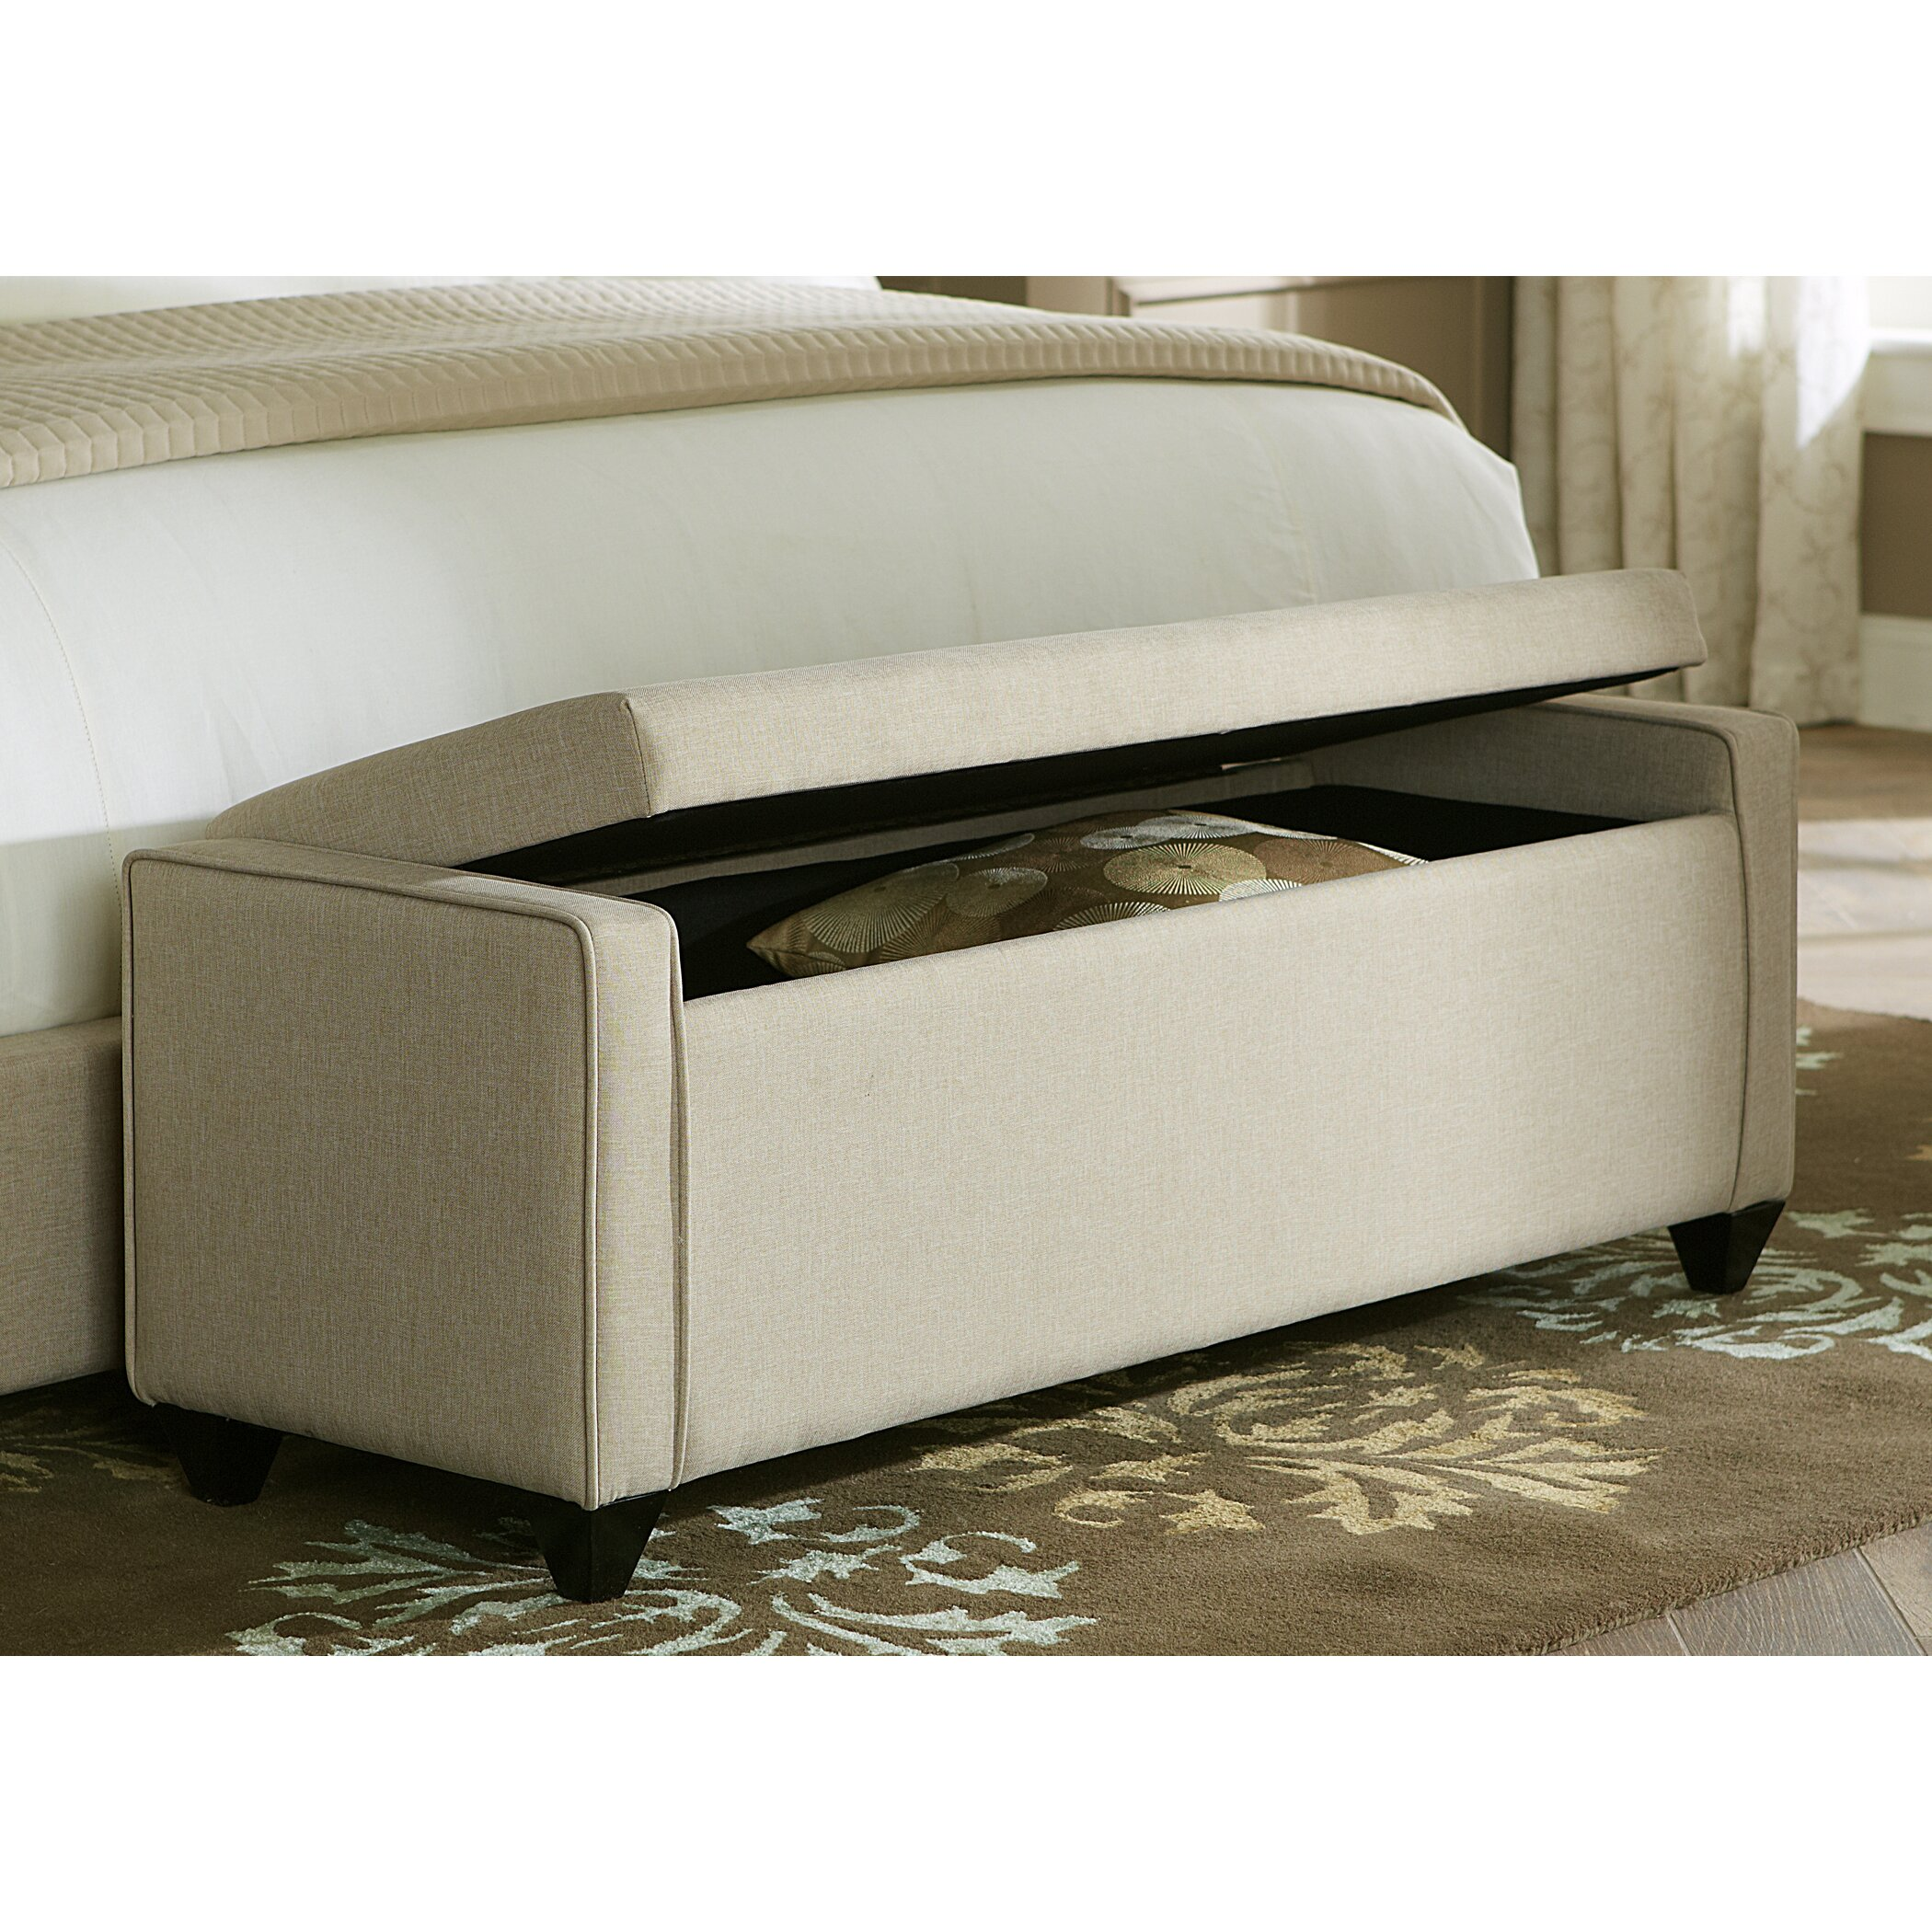 Bedroom Bench Storage Liberty Furniture Upholstered Storage Bedroom Bench Reviews